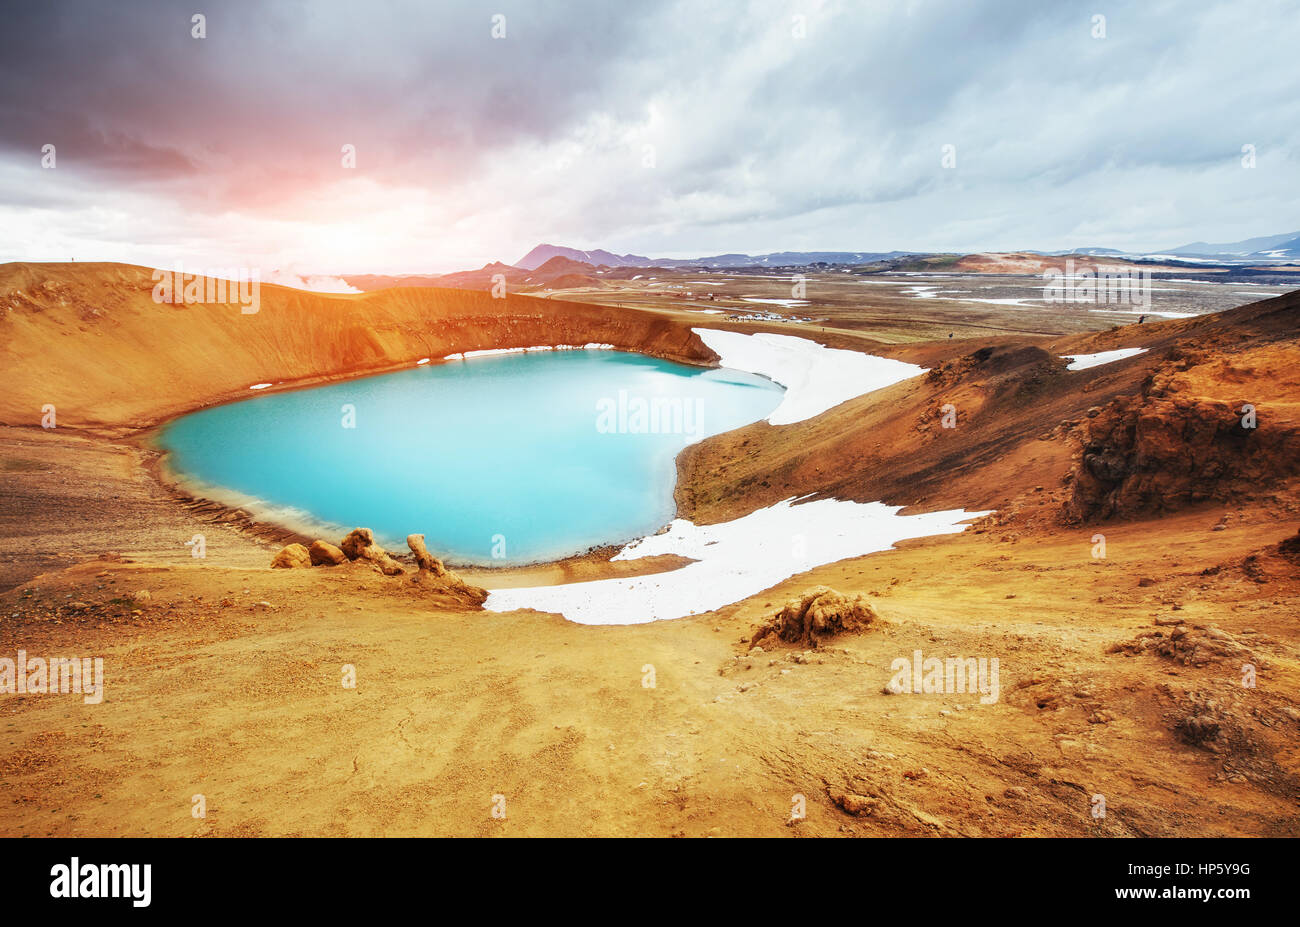 Giant volcano overlooks. Turquoise provides a warm geothermal wa - Stock Image